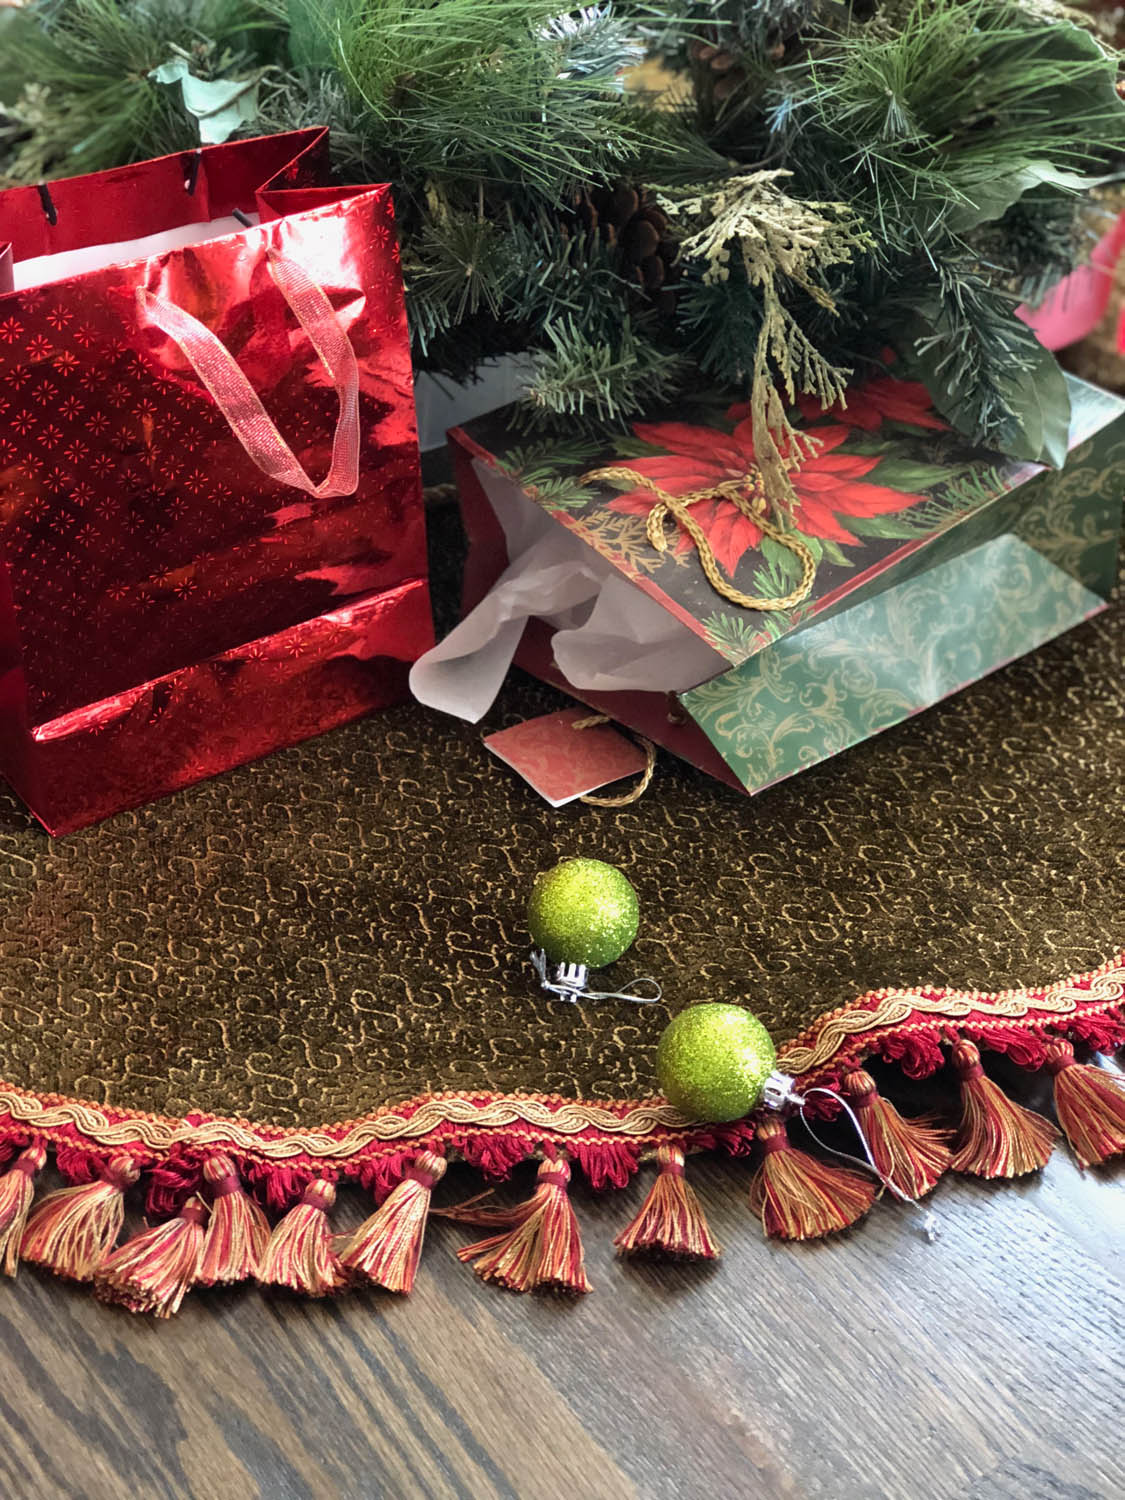 DIY no-sew reversible upholstery fabric Christmas tree skirt under a Christmas tree with scattered gifts and ornaments.